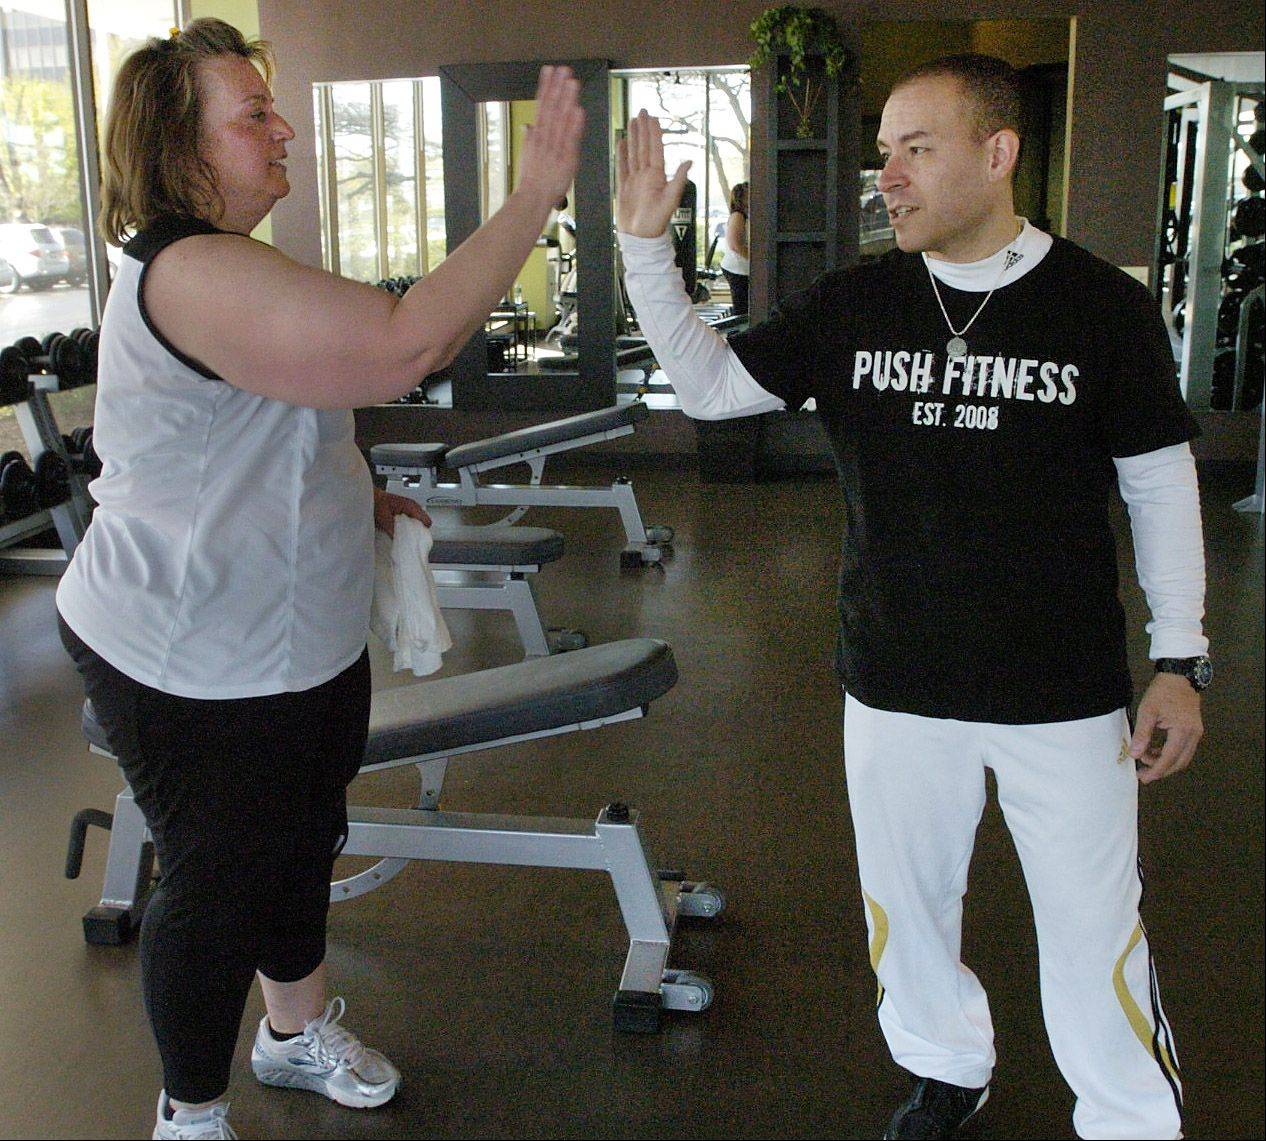 Karen Maranto fits right in at the gym thanks to the confidence instilled in her by trainer Tony Figueroa.